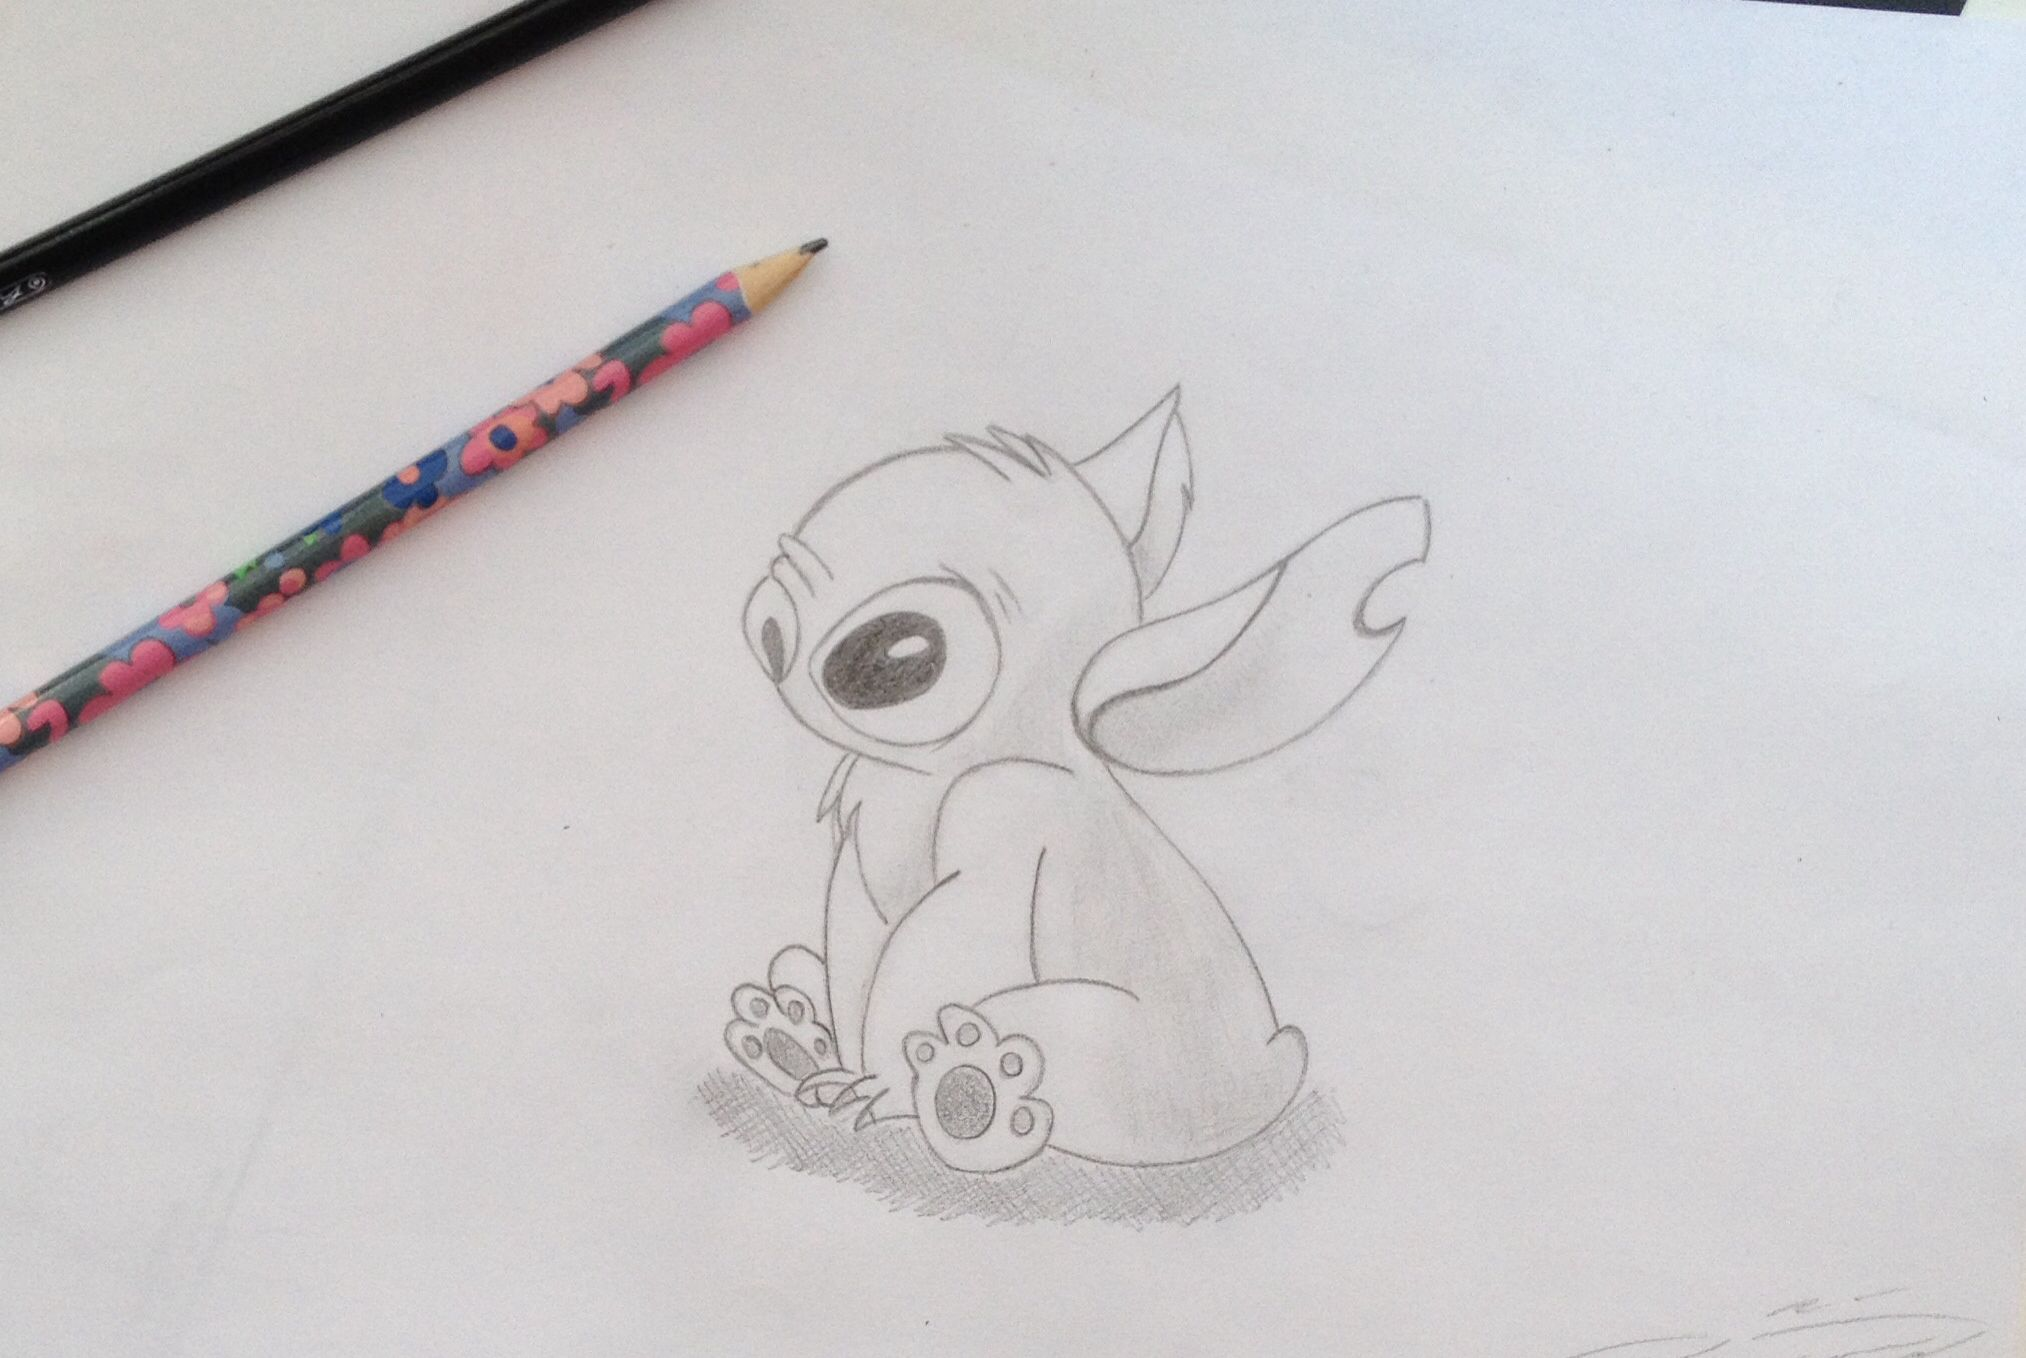 From lilo and stitch.